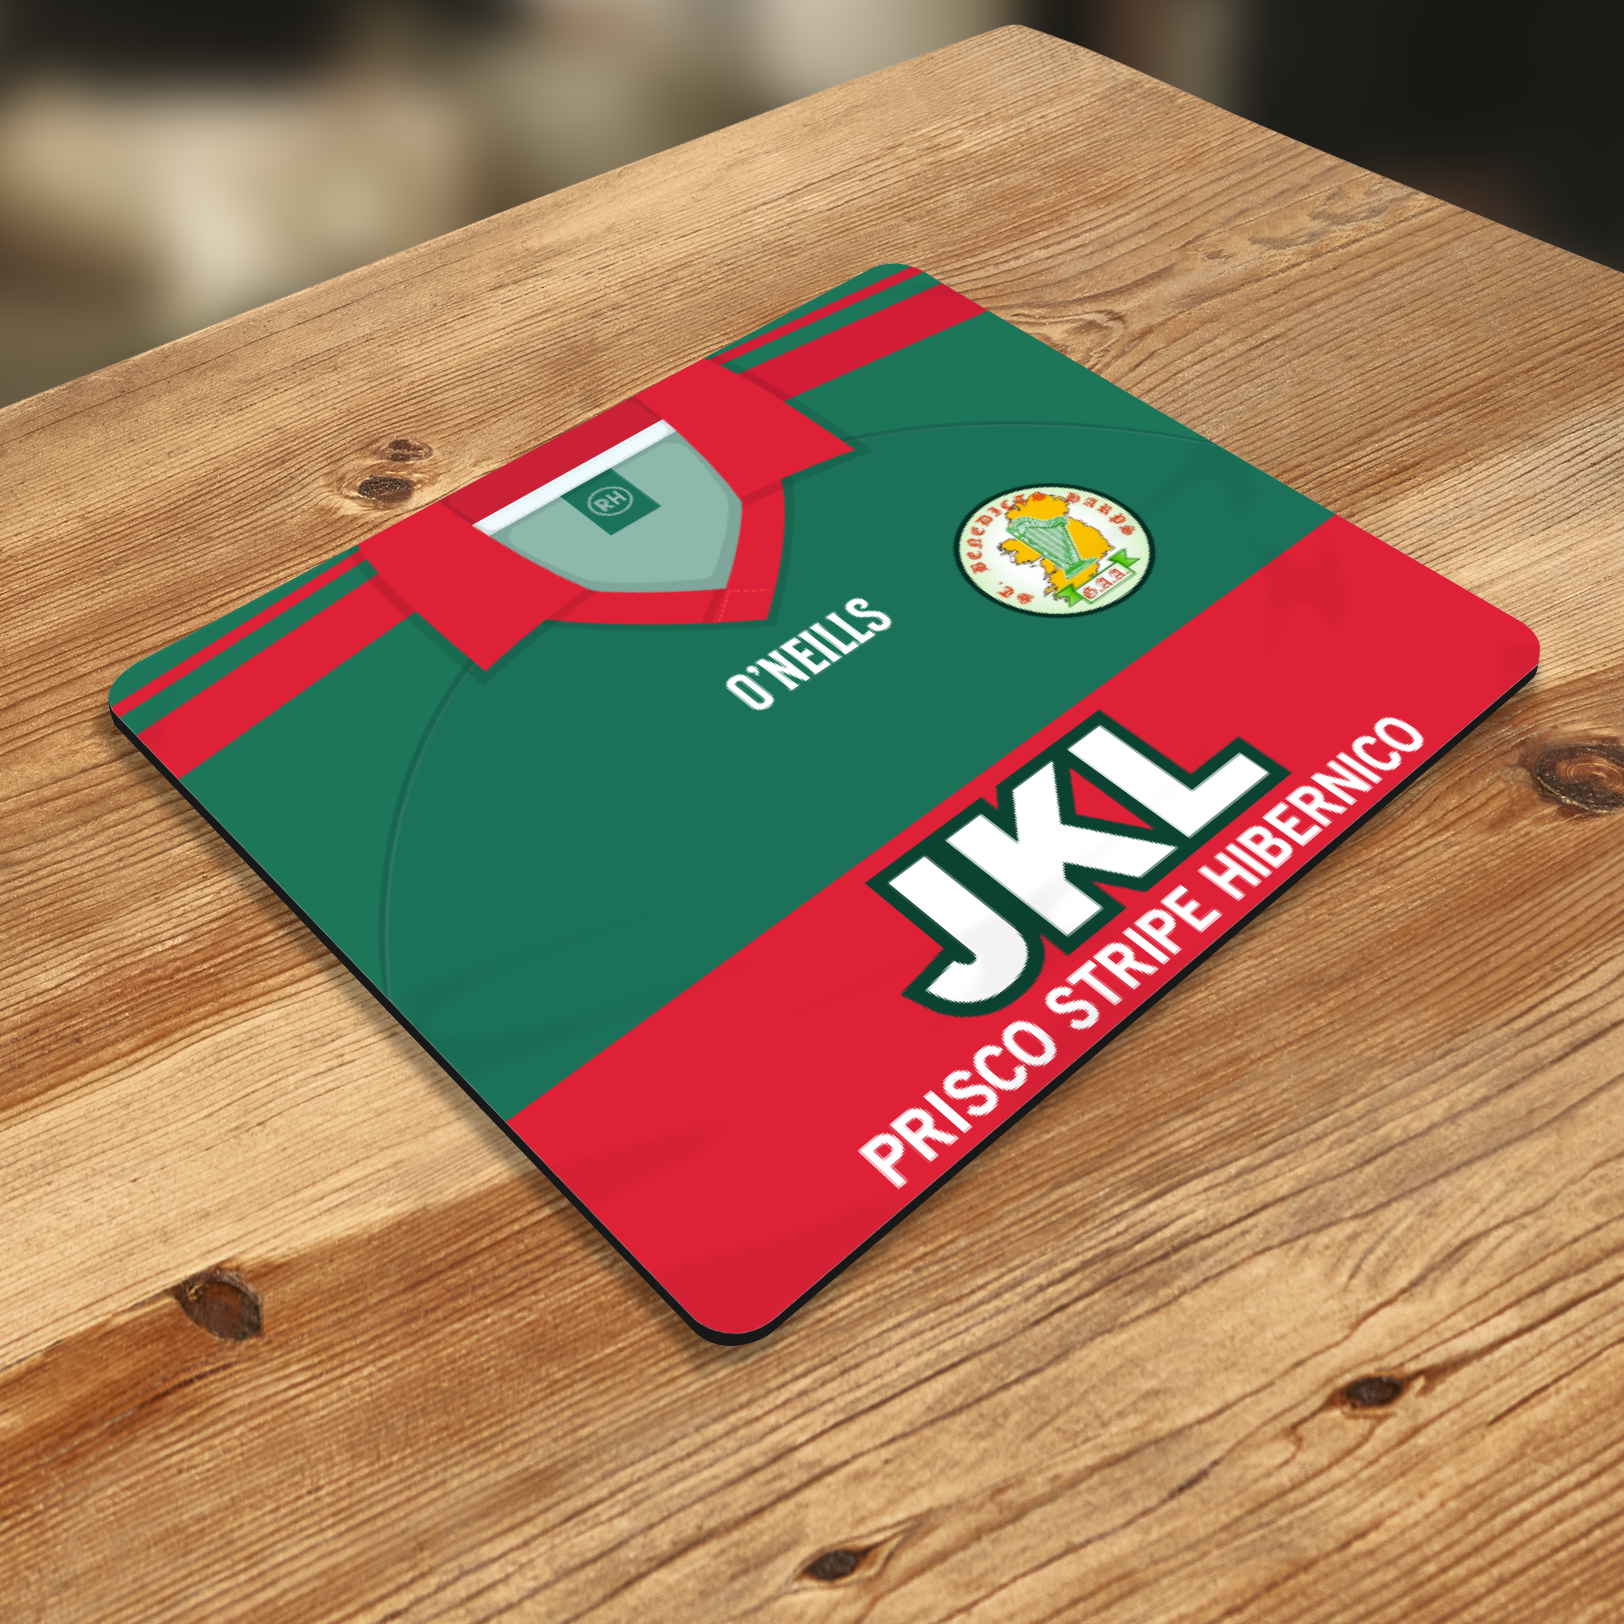 ST BENEDICTS HARPS OFFICIAL MOUSE MAT